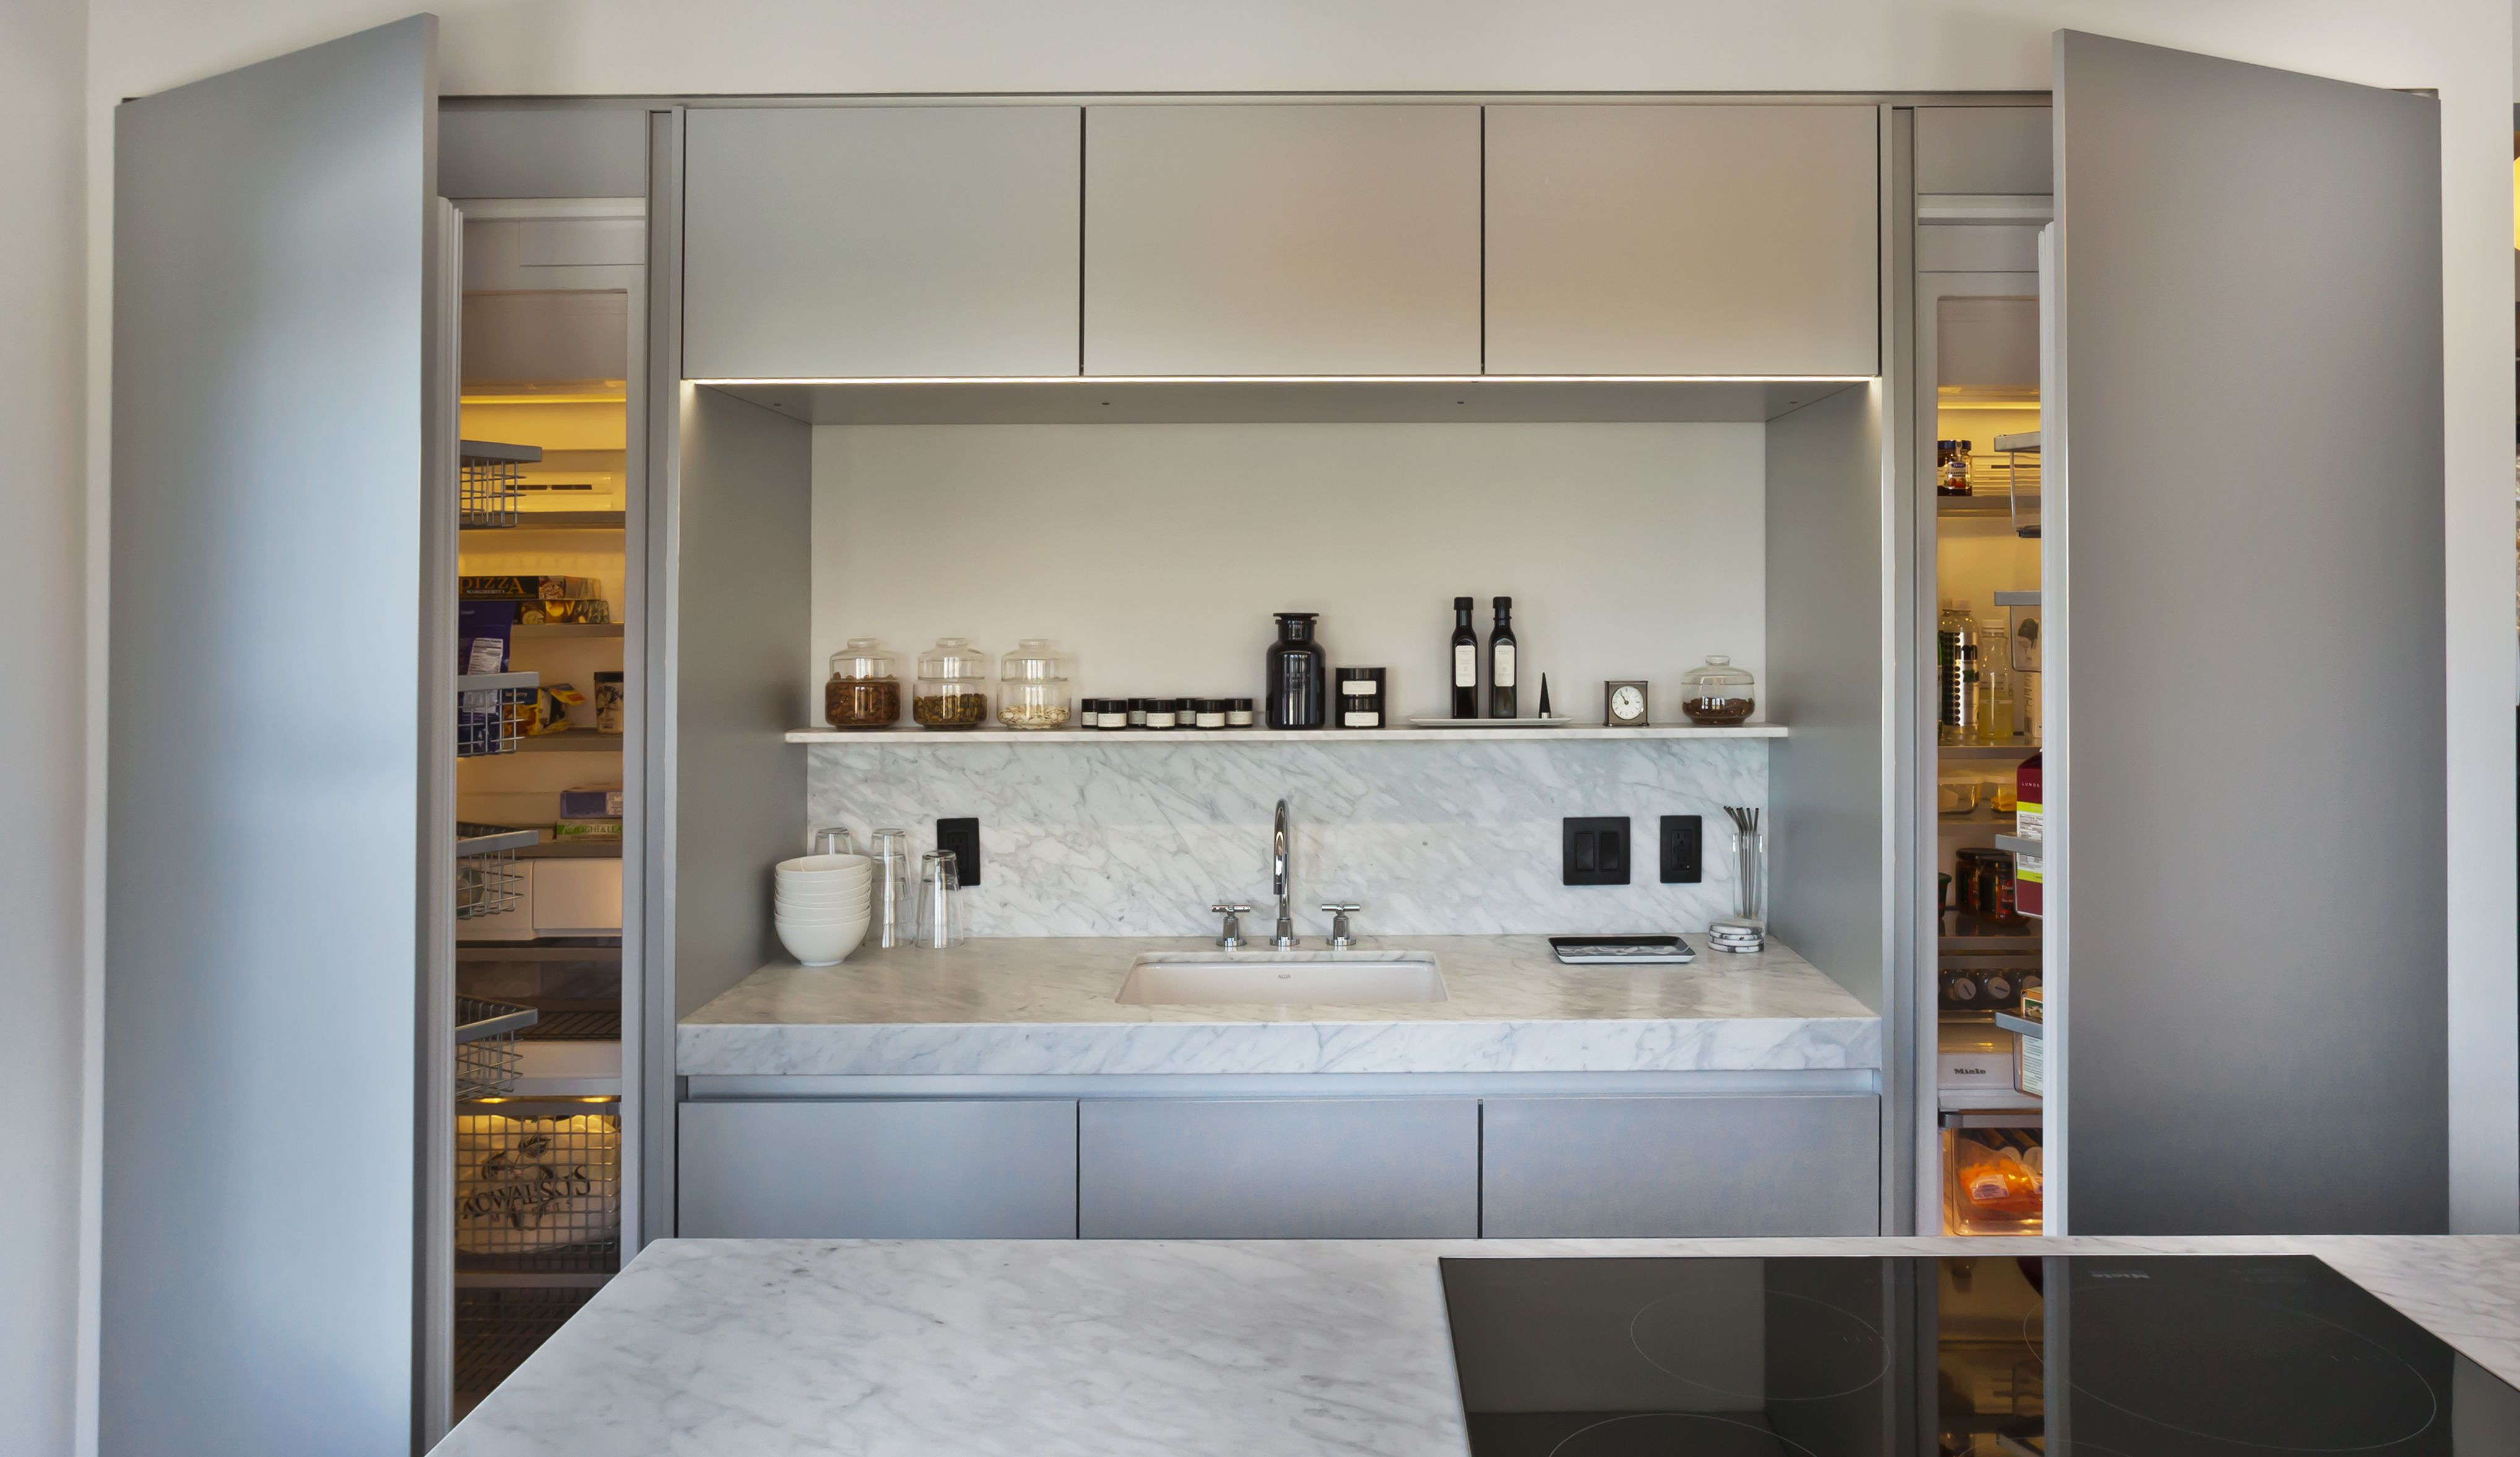 Beyond The Kitchen S Design A New Definition Of Space With A New Identity That Incorporates The Home A Space Kitchen Inspirations Residential Design Design